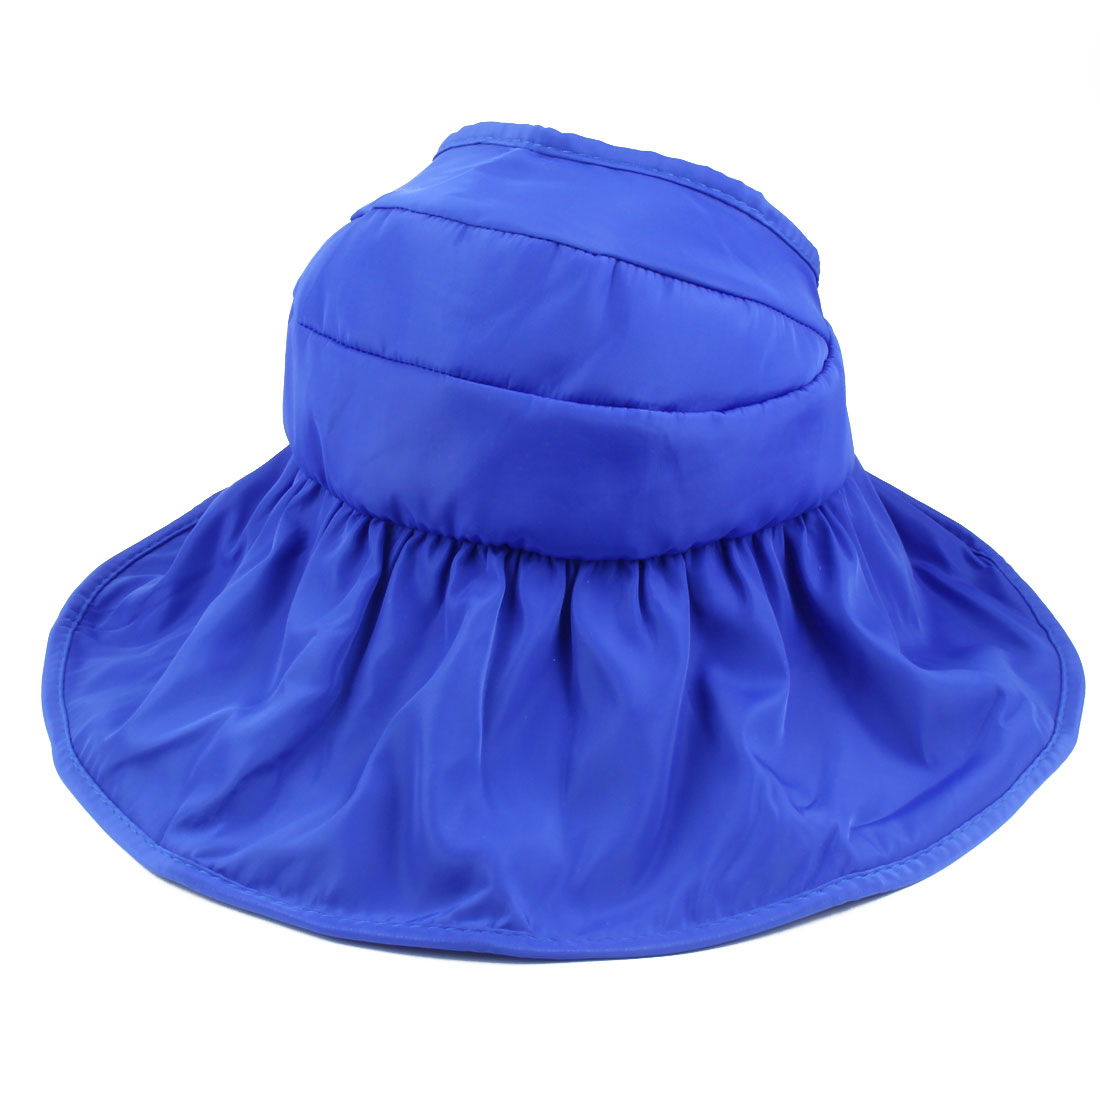 Woman Summer Outdoor Roll Up Wide Floppy Brim Foldable Visor Cap Sun Protector Hat Royal Blue